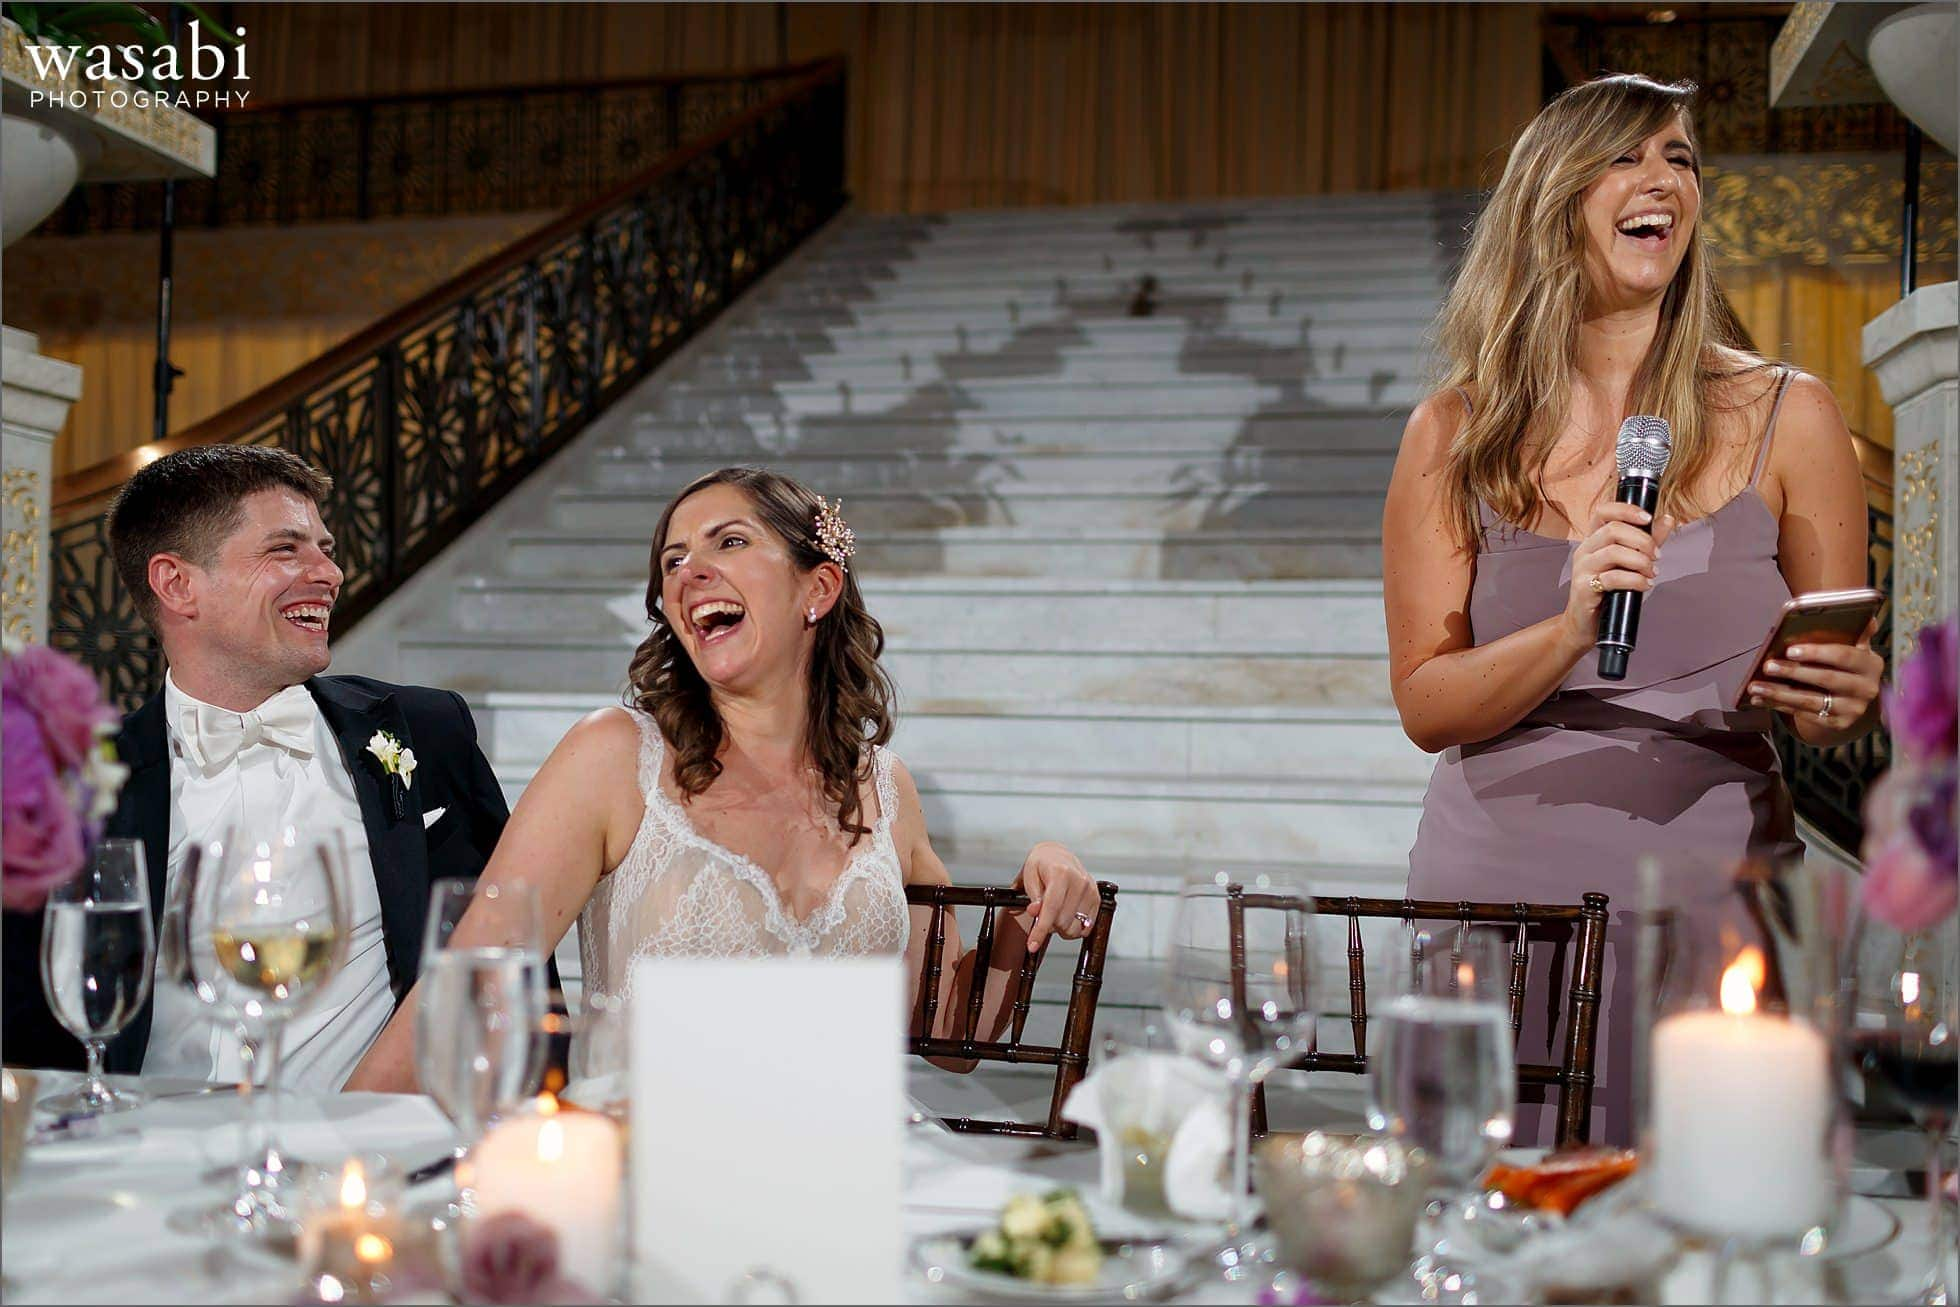 maid of honor toast speech with bride and groom laughing during wedding reception at The Rookery Building in Chicago